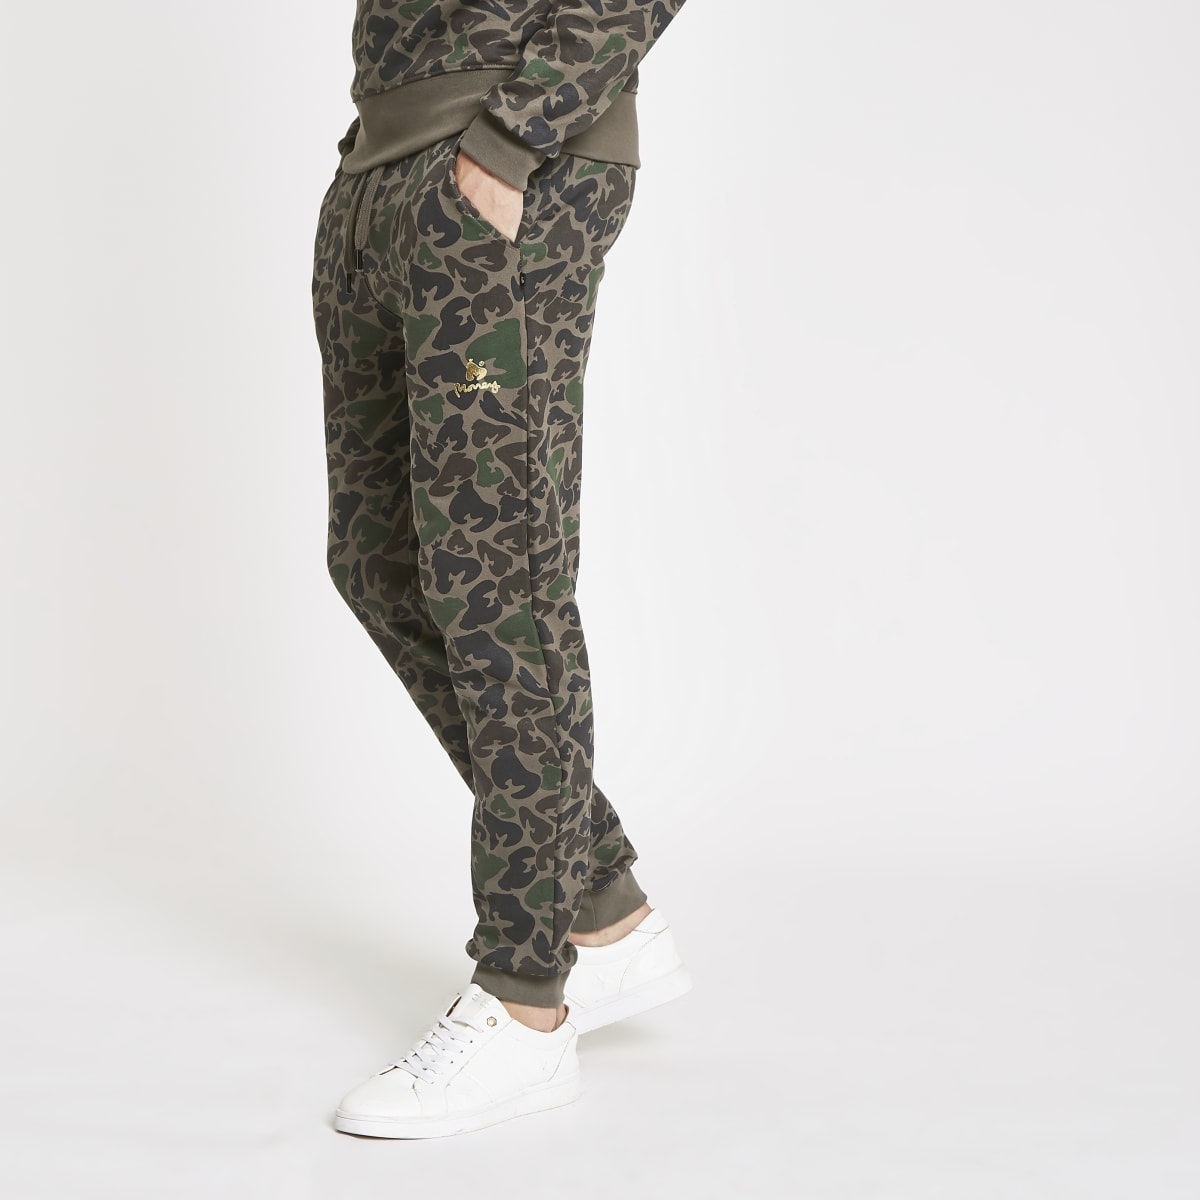 Money Clothing dark brown camo joggers